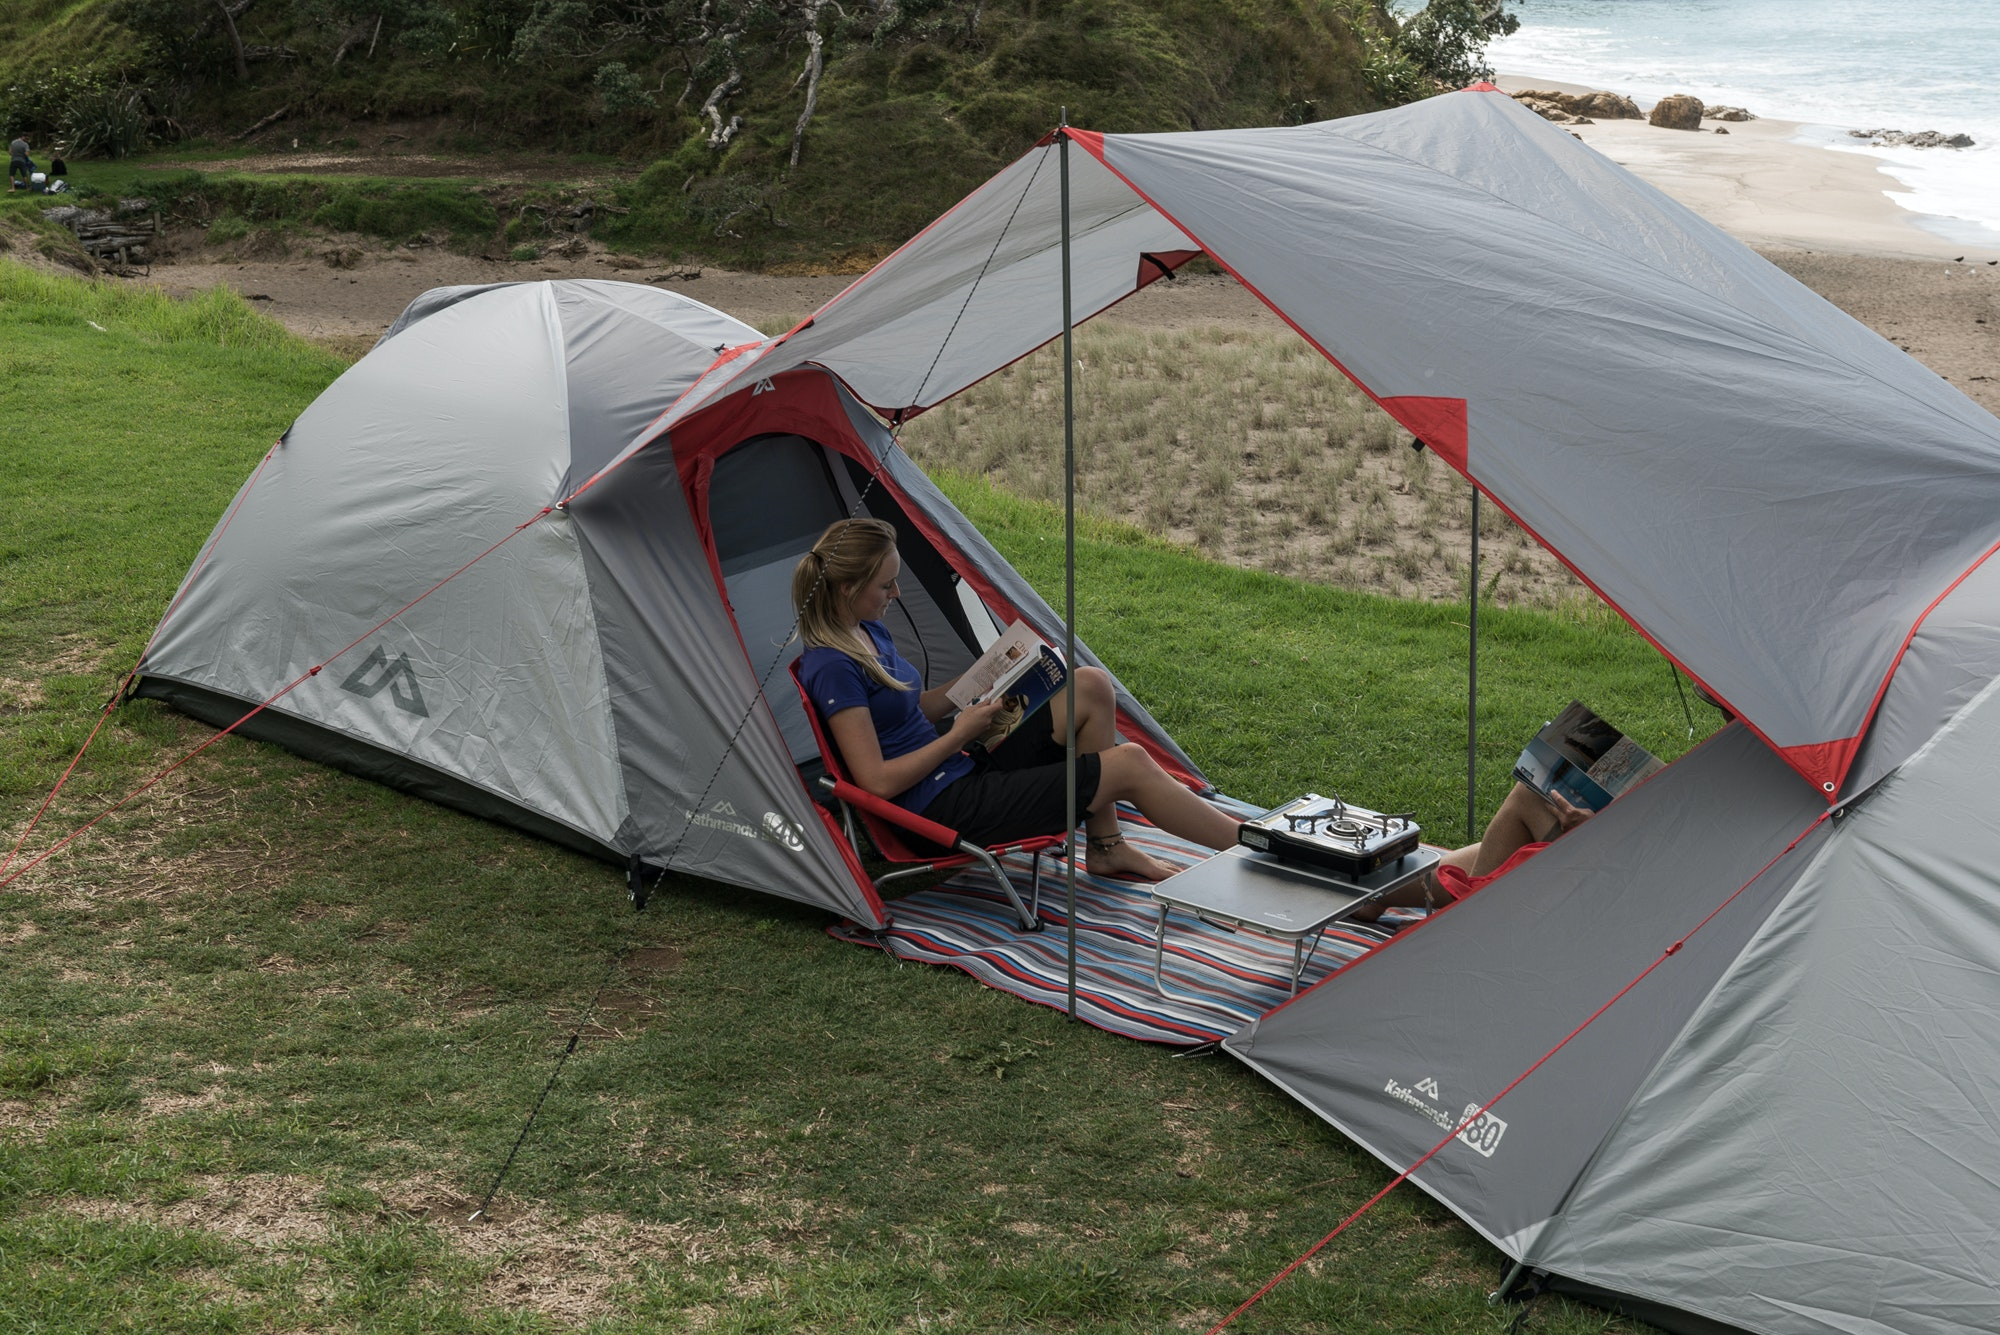 Two Person Tent : Retreat person tent warm grey sunset